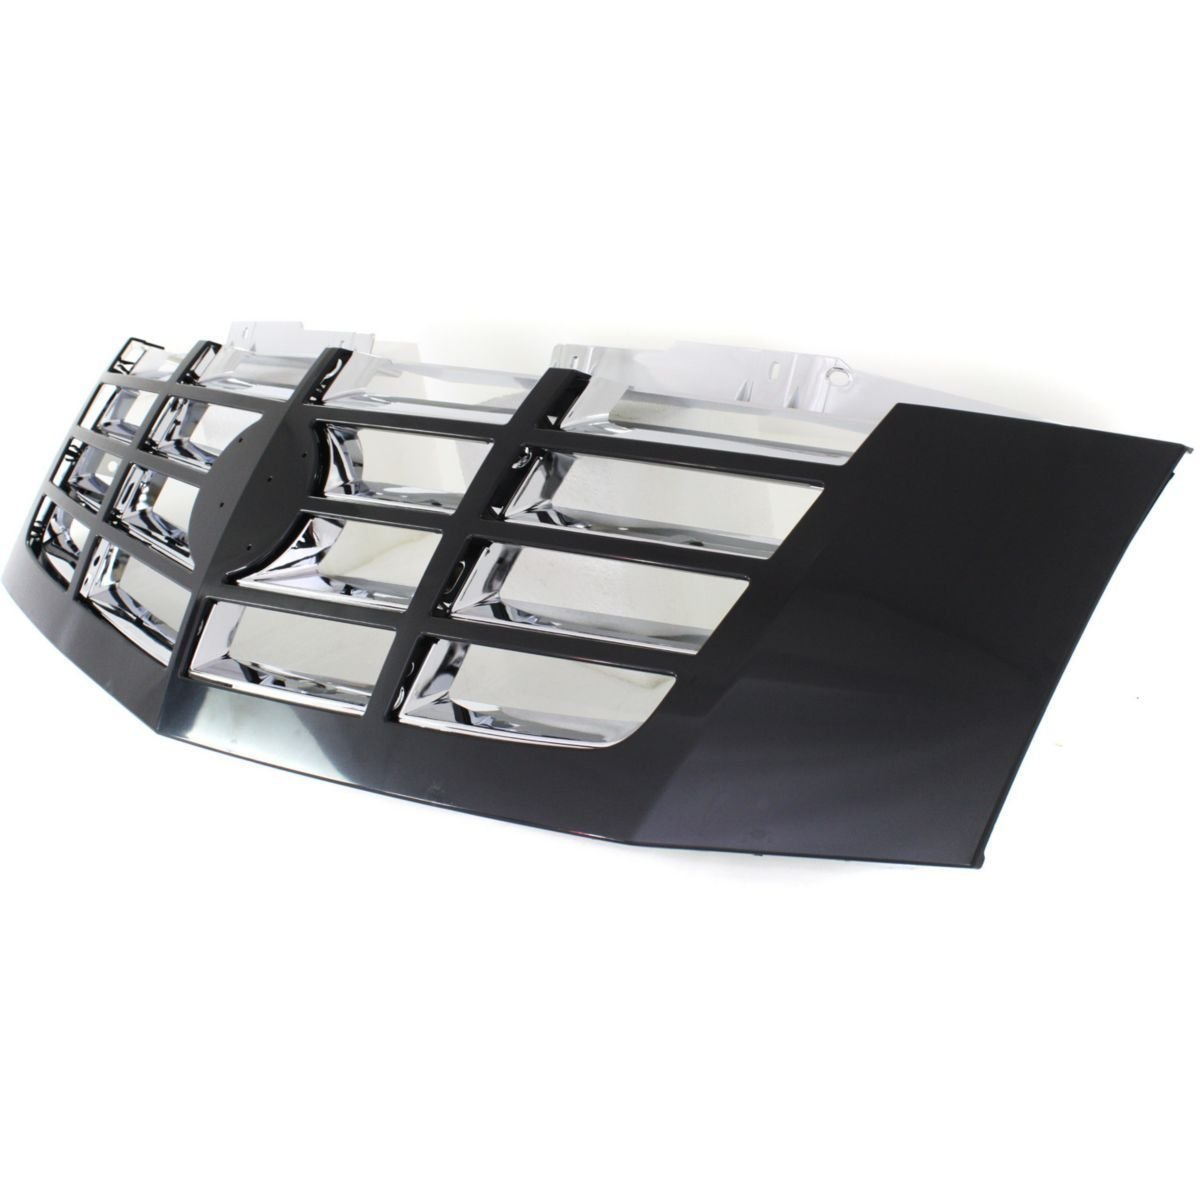 Diften 102-A6464-X01 - New Grille Assembly Grill Black shell chrome insert Escalade GM1200619 20824256